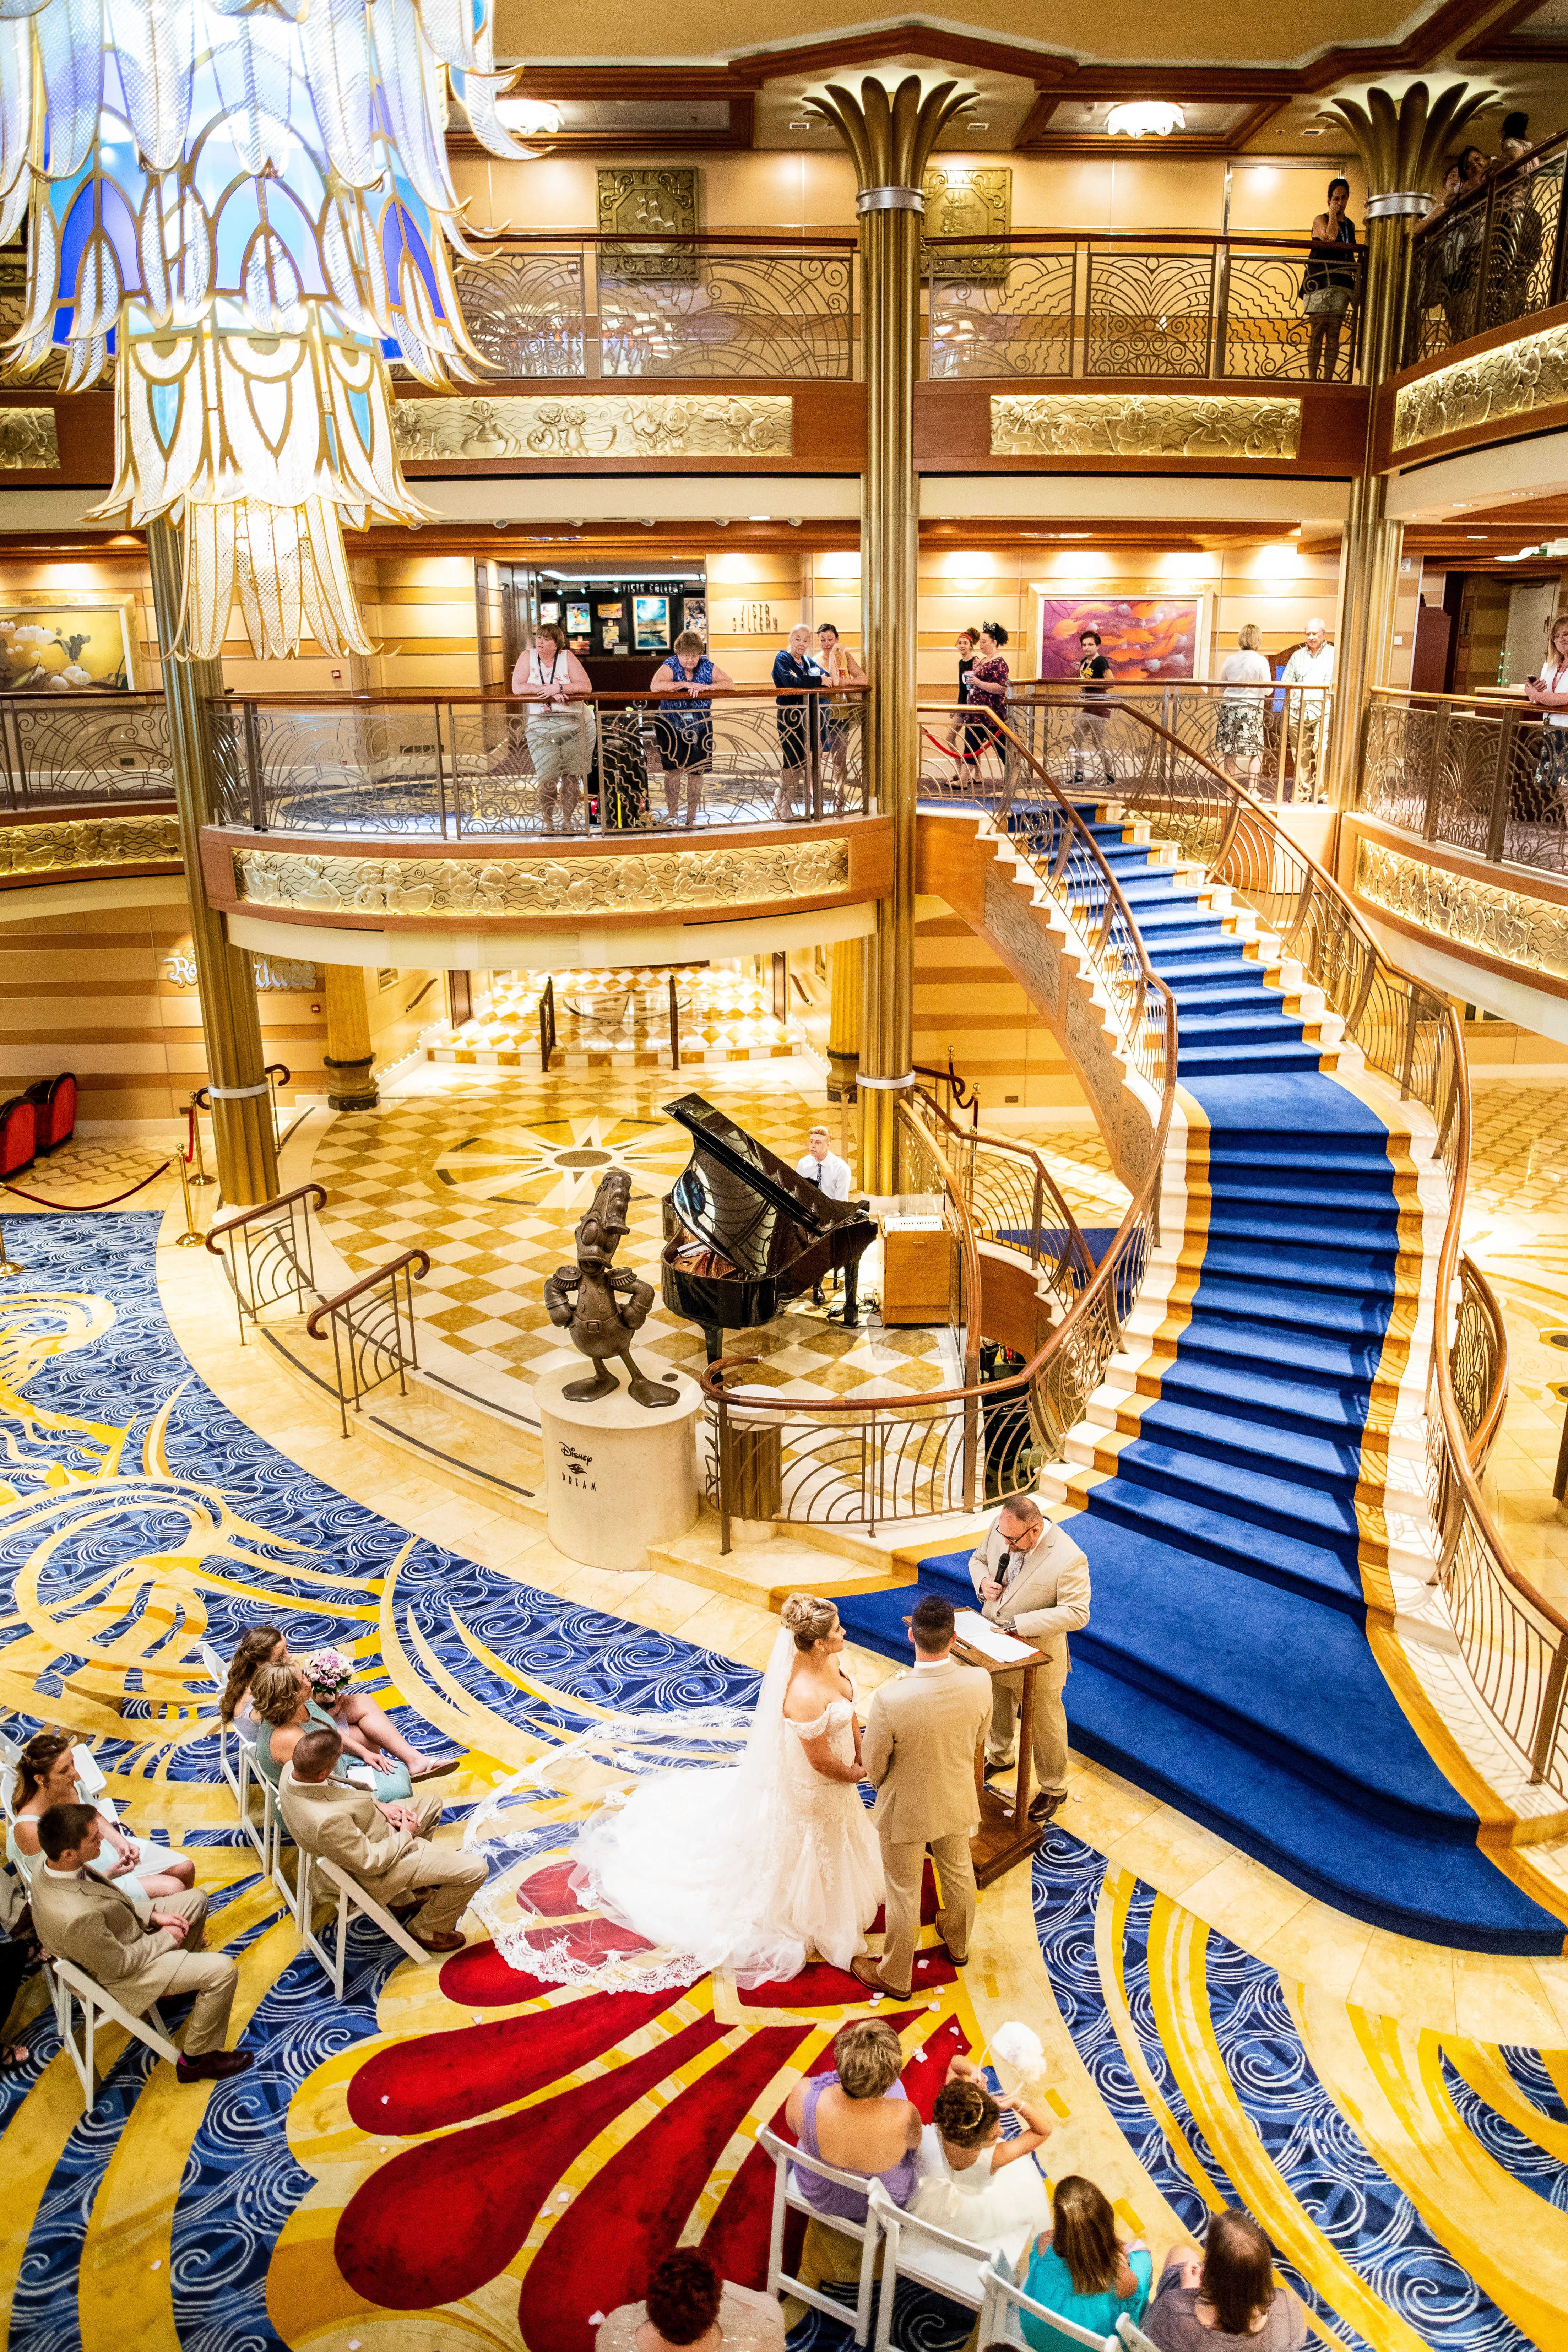 Disney Dream Atrium Cruise Wedding Ceremony Cruise Wedding Ceremony Cruise Wedding Disney Cruise Wedding